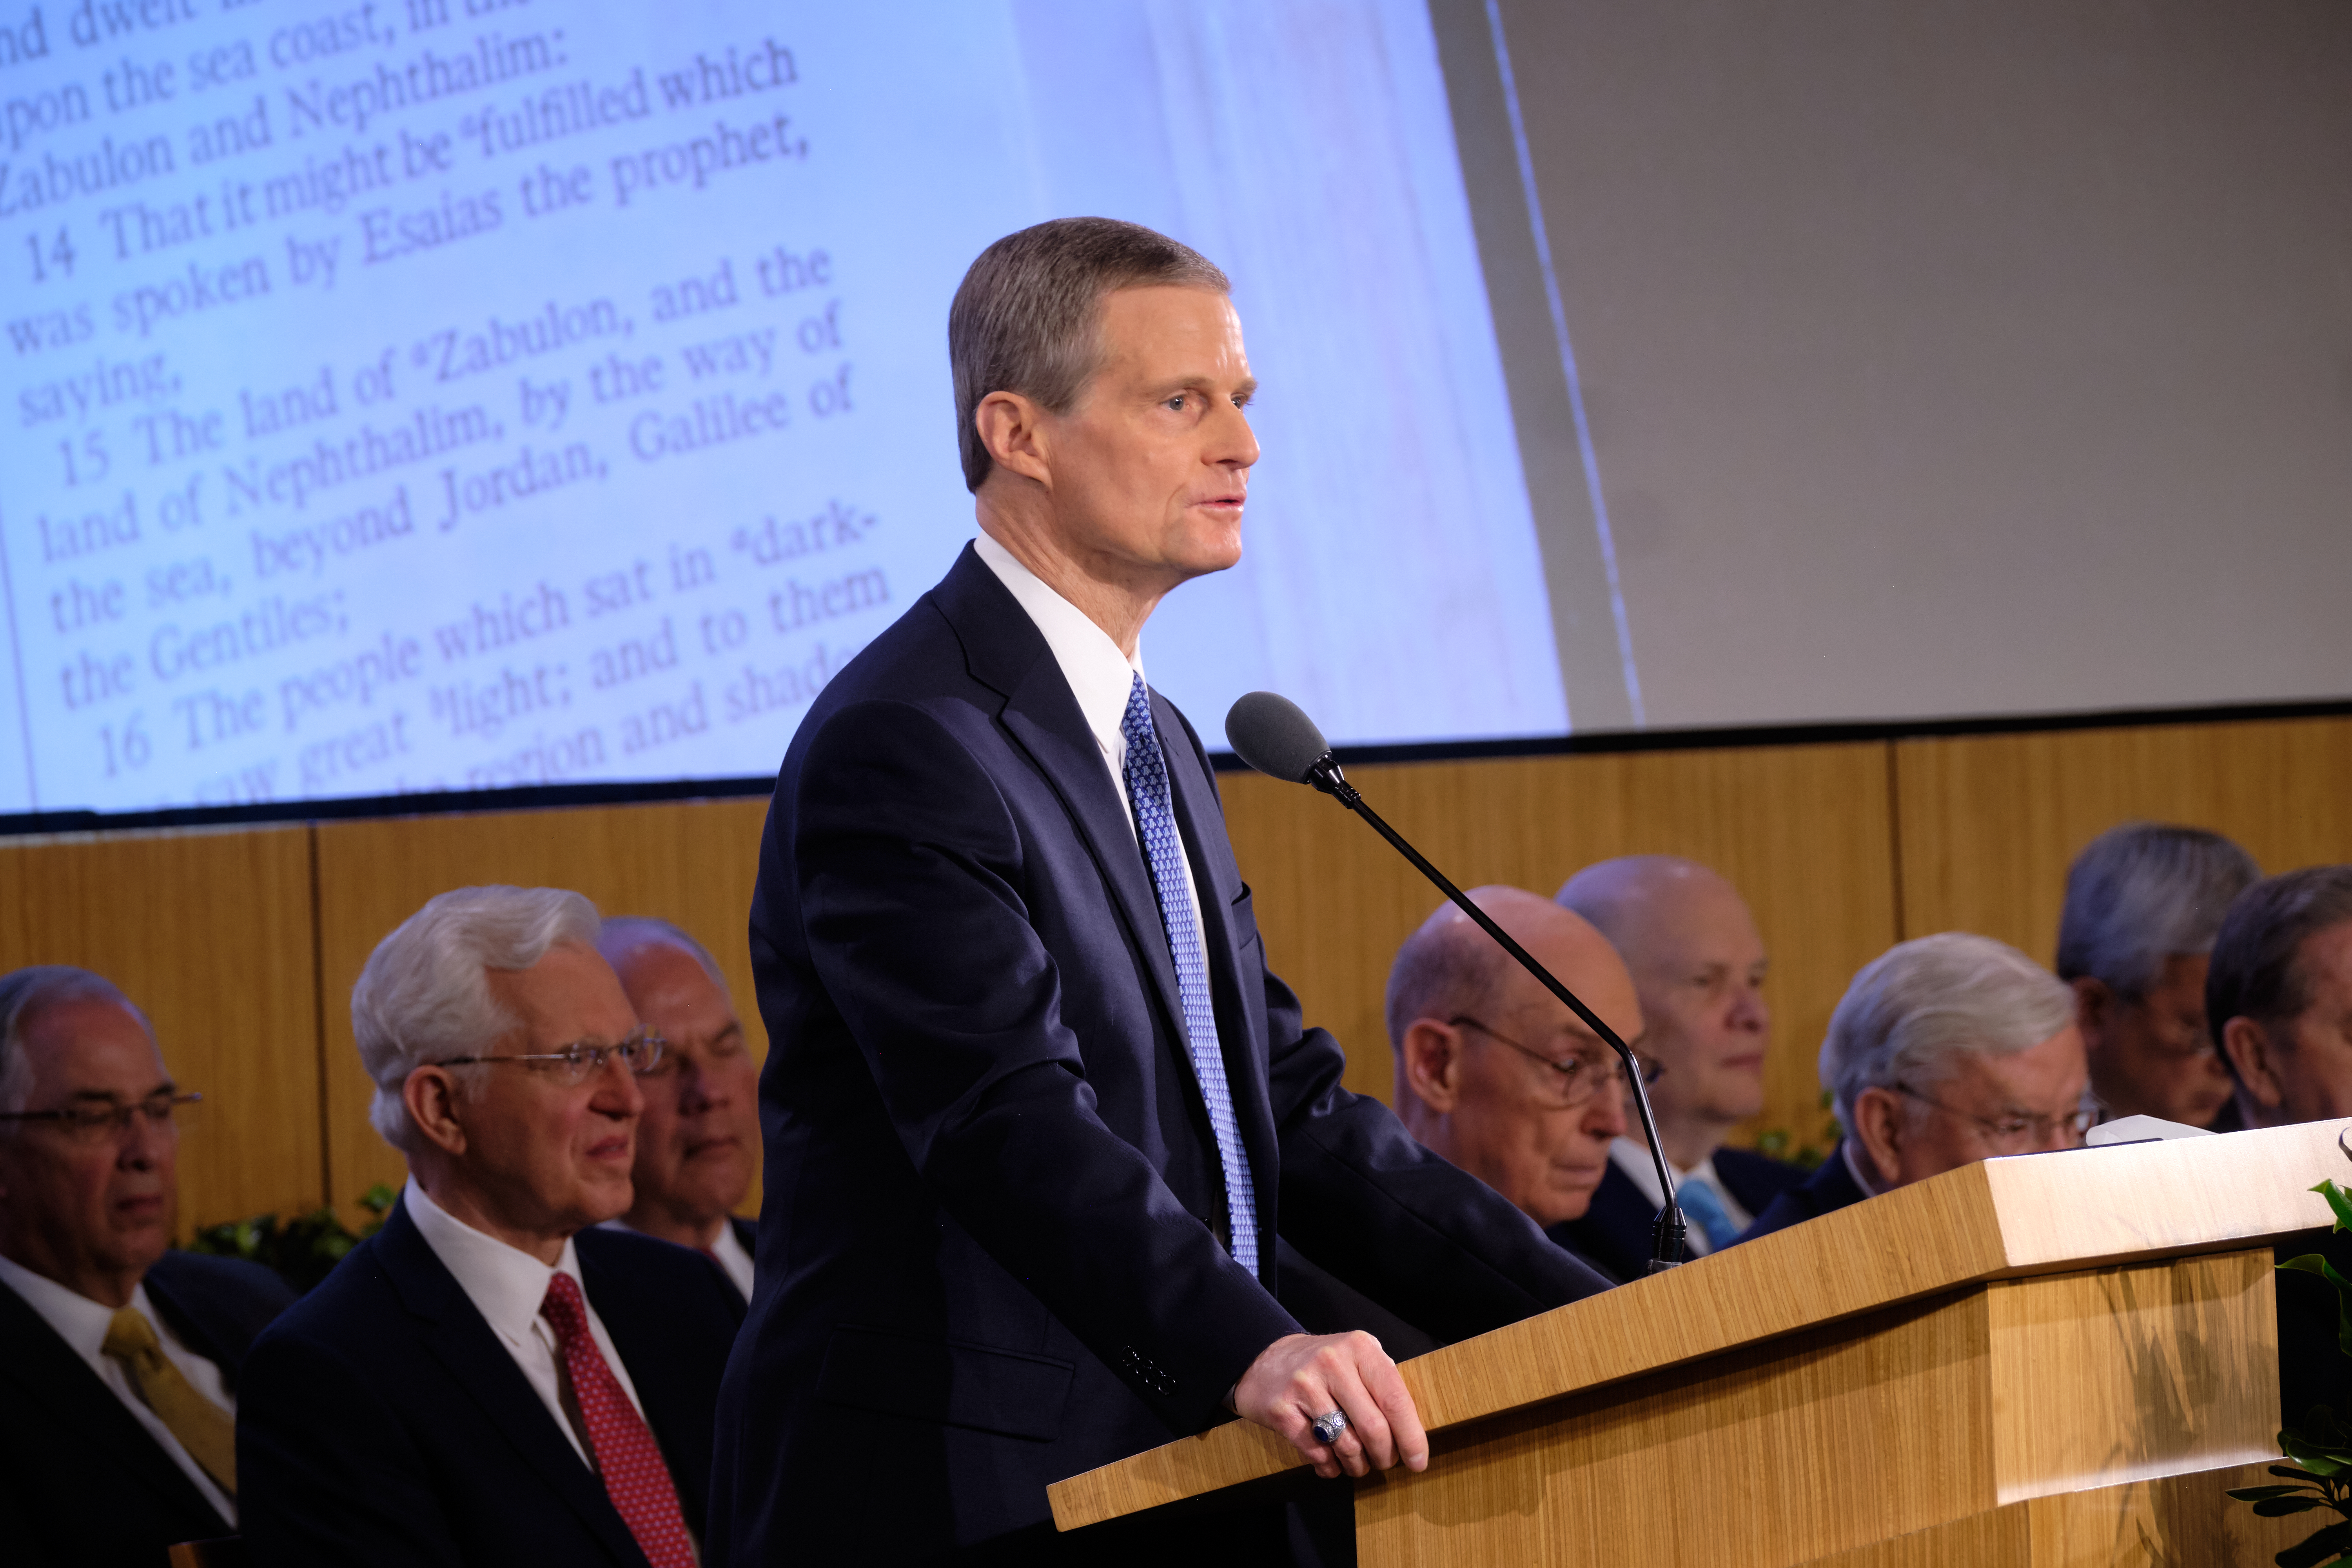 Elder David A. Bednar of the Quorum of the Twelve Apostles speaks during the 2019 Mission Leadership Seminar in the Provo Missionary Training Center on June 27, 2019.